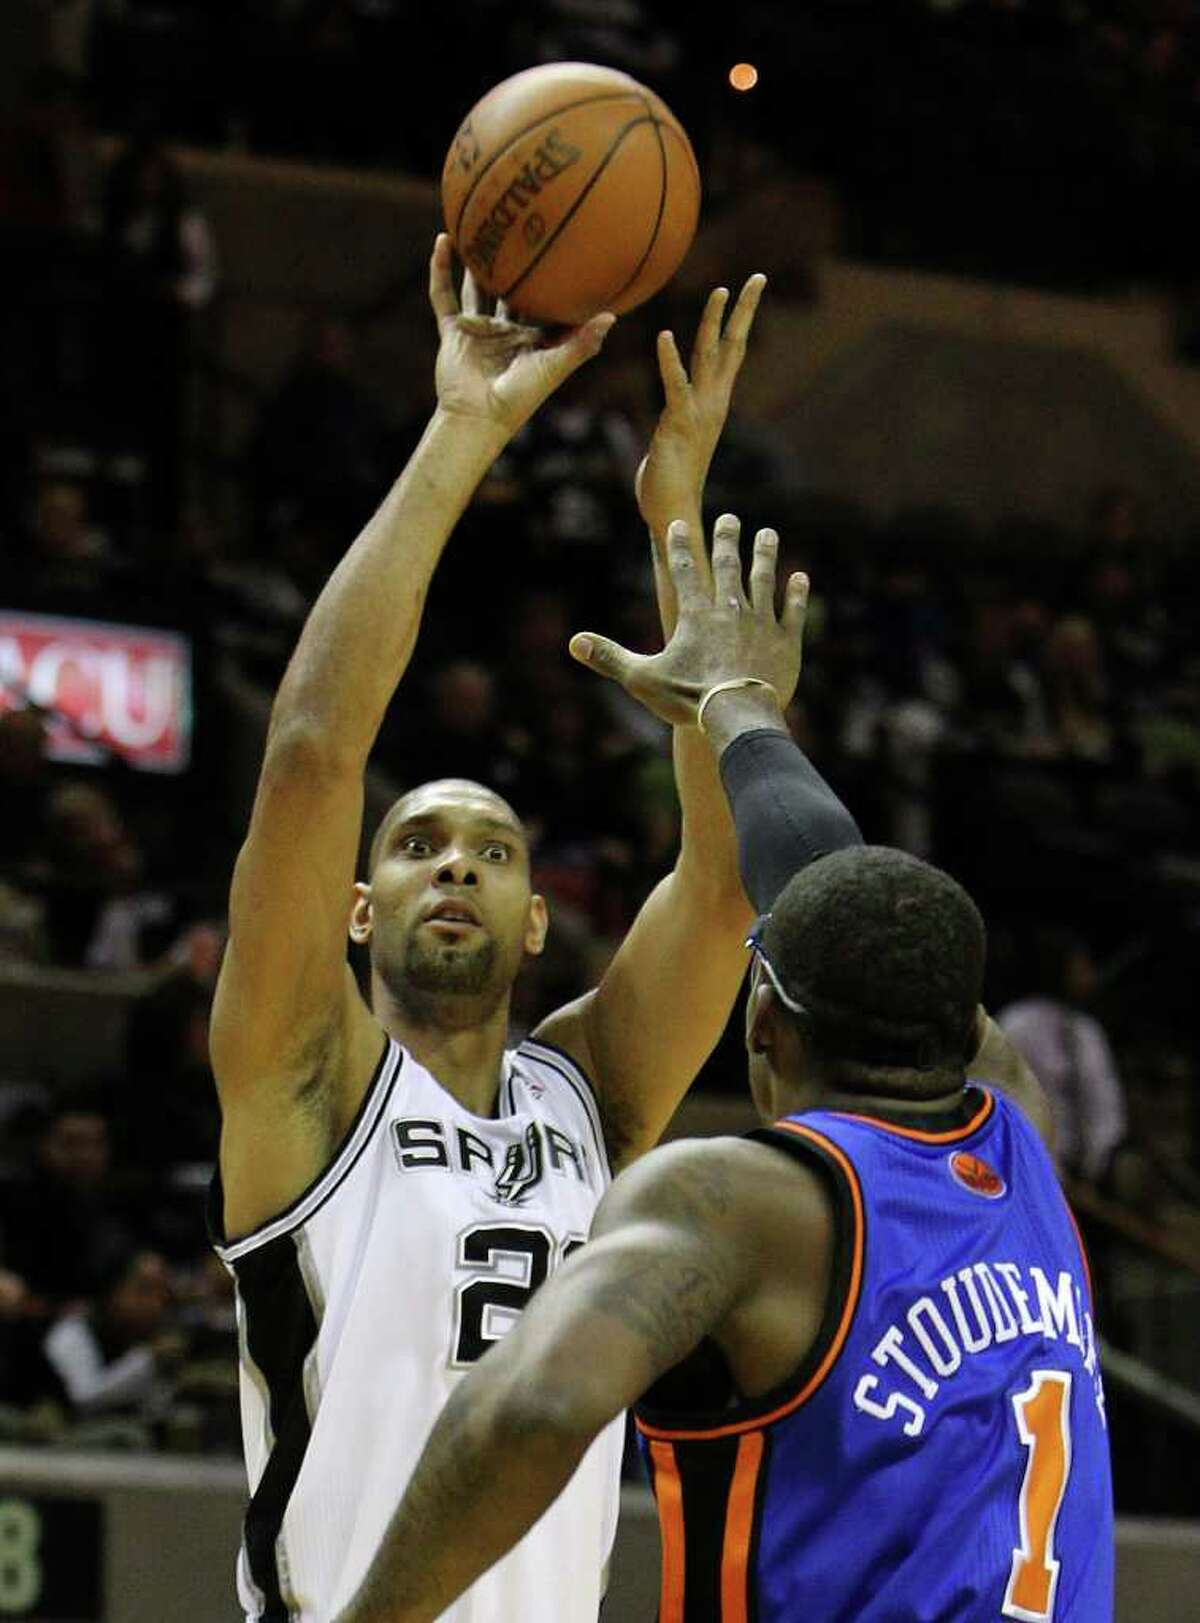 Spurs' Tim Duncan (21) shoots over New York Knicks' Amar'e Stoudemire (01) in the first half at the AT&T Center on Friday, Jan. 21, 2011. Kin Man Hui/kmhui@express-news.net